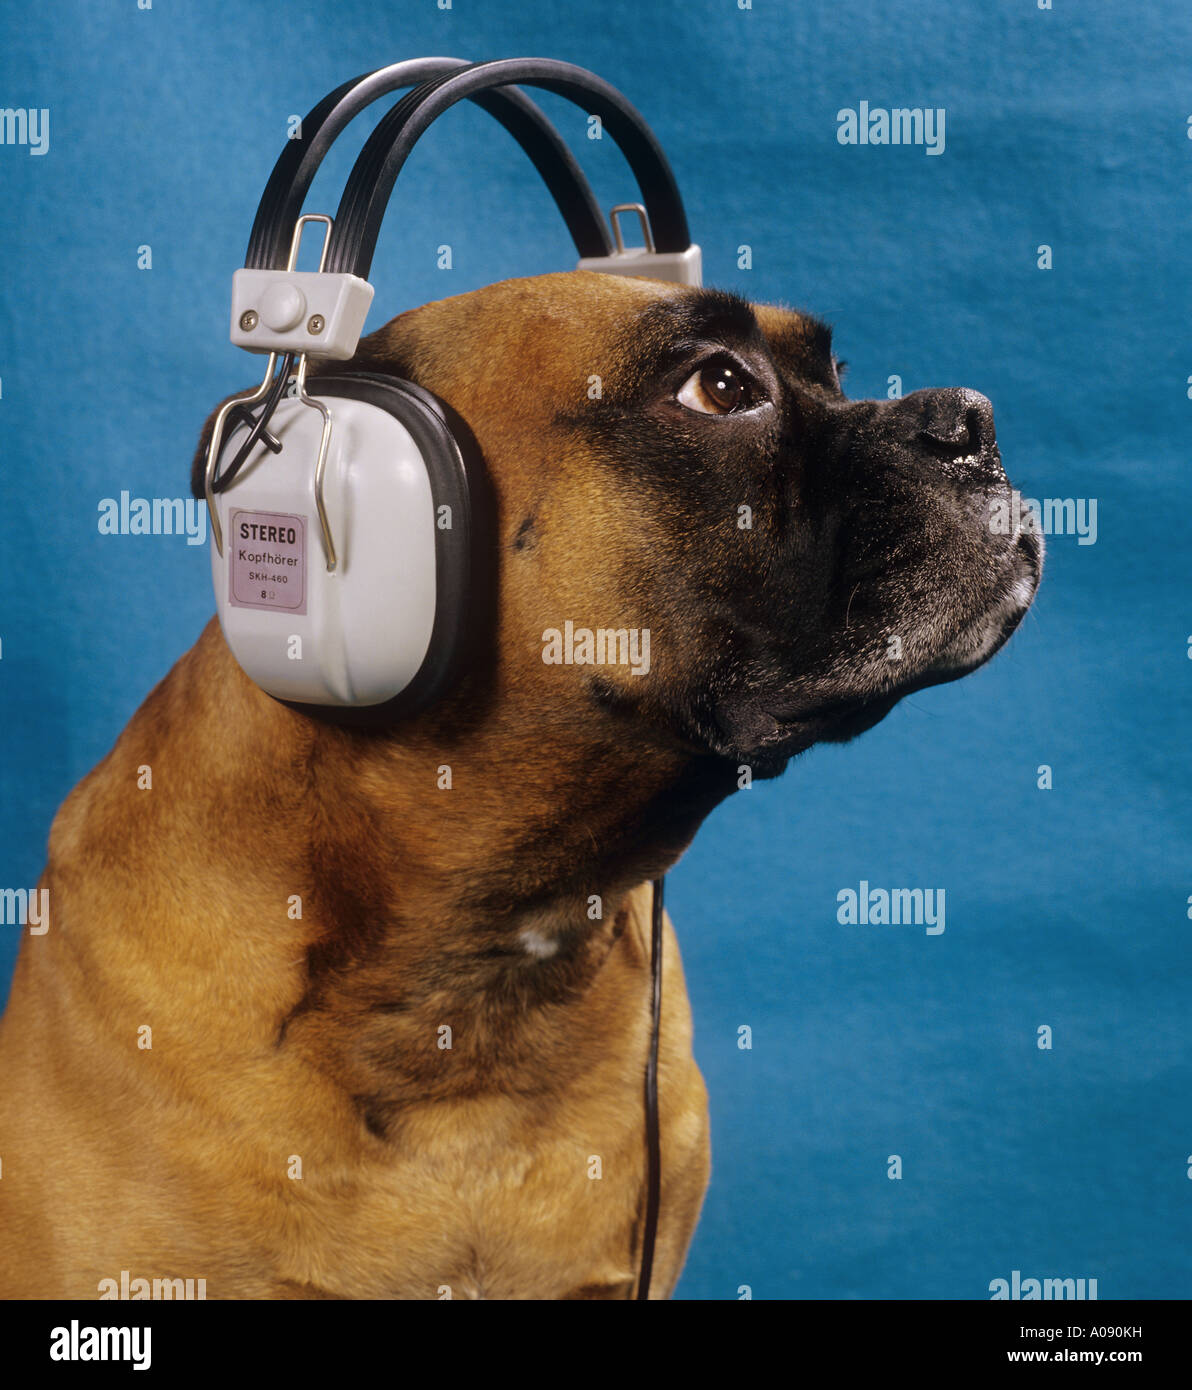 Boxer with headphone - funny Stock Photo